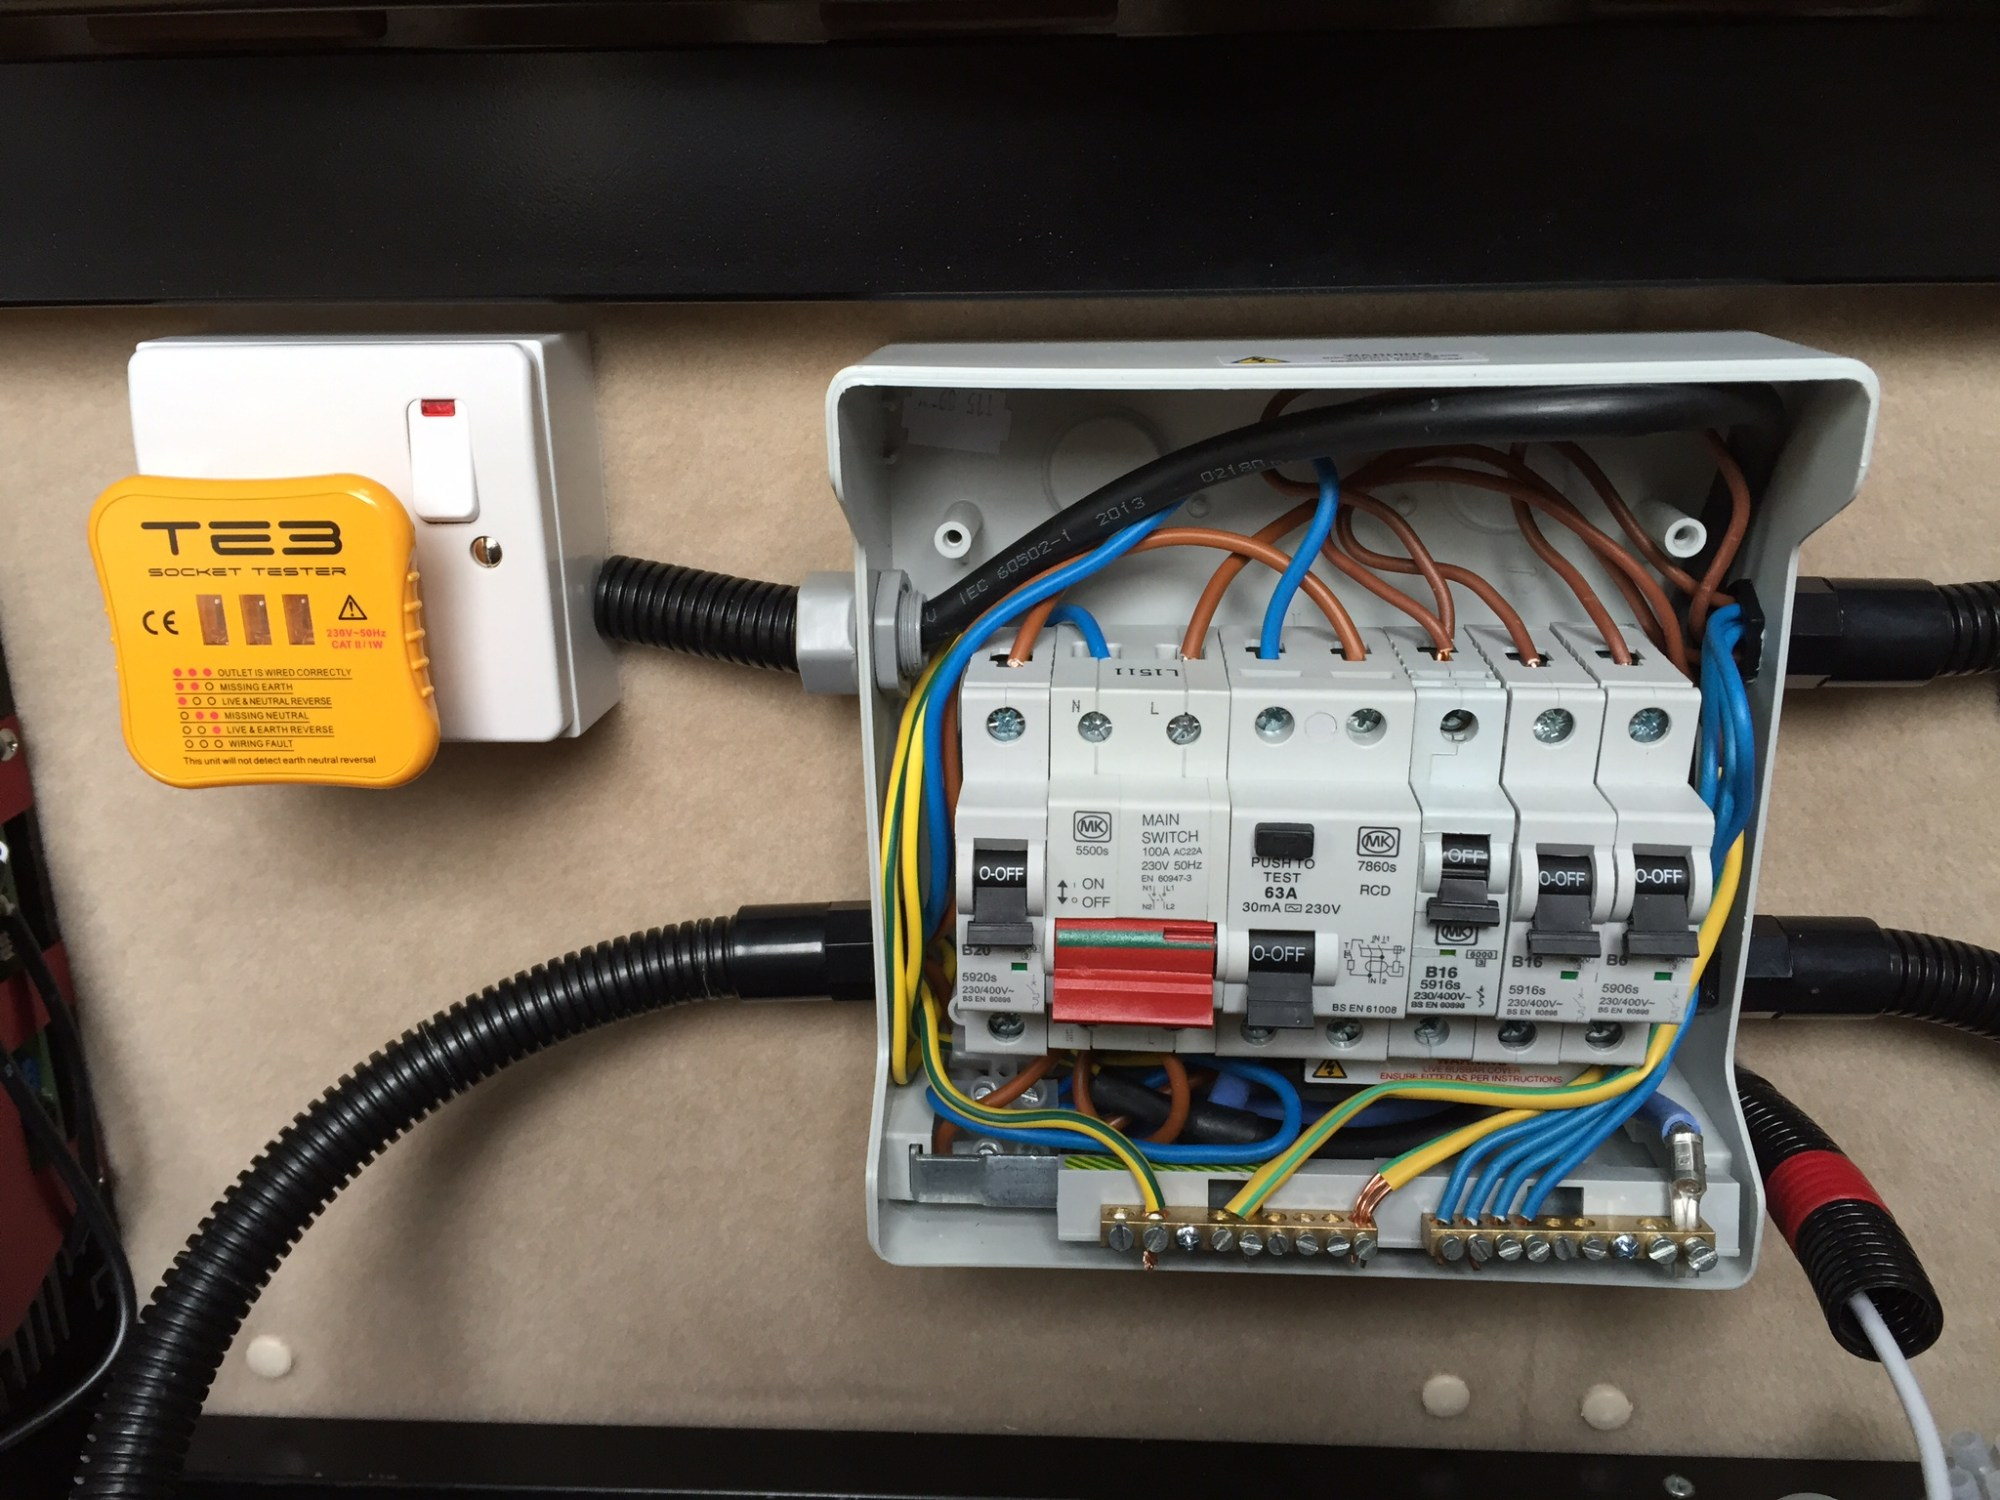 hight resolution of vw crafter van conversion 12vdc and 230vac electrics wiring consumer unit campervan